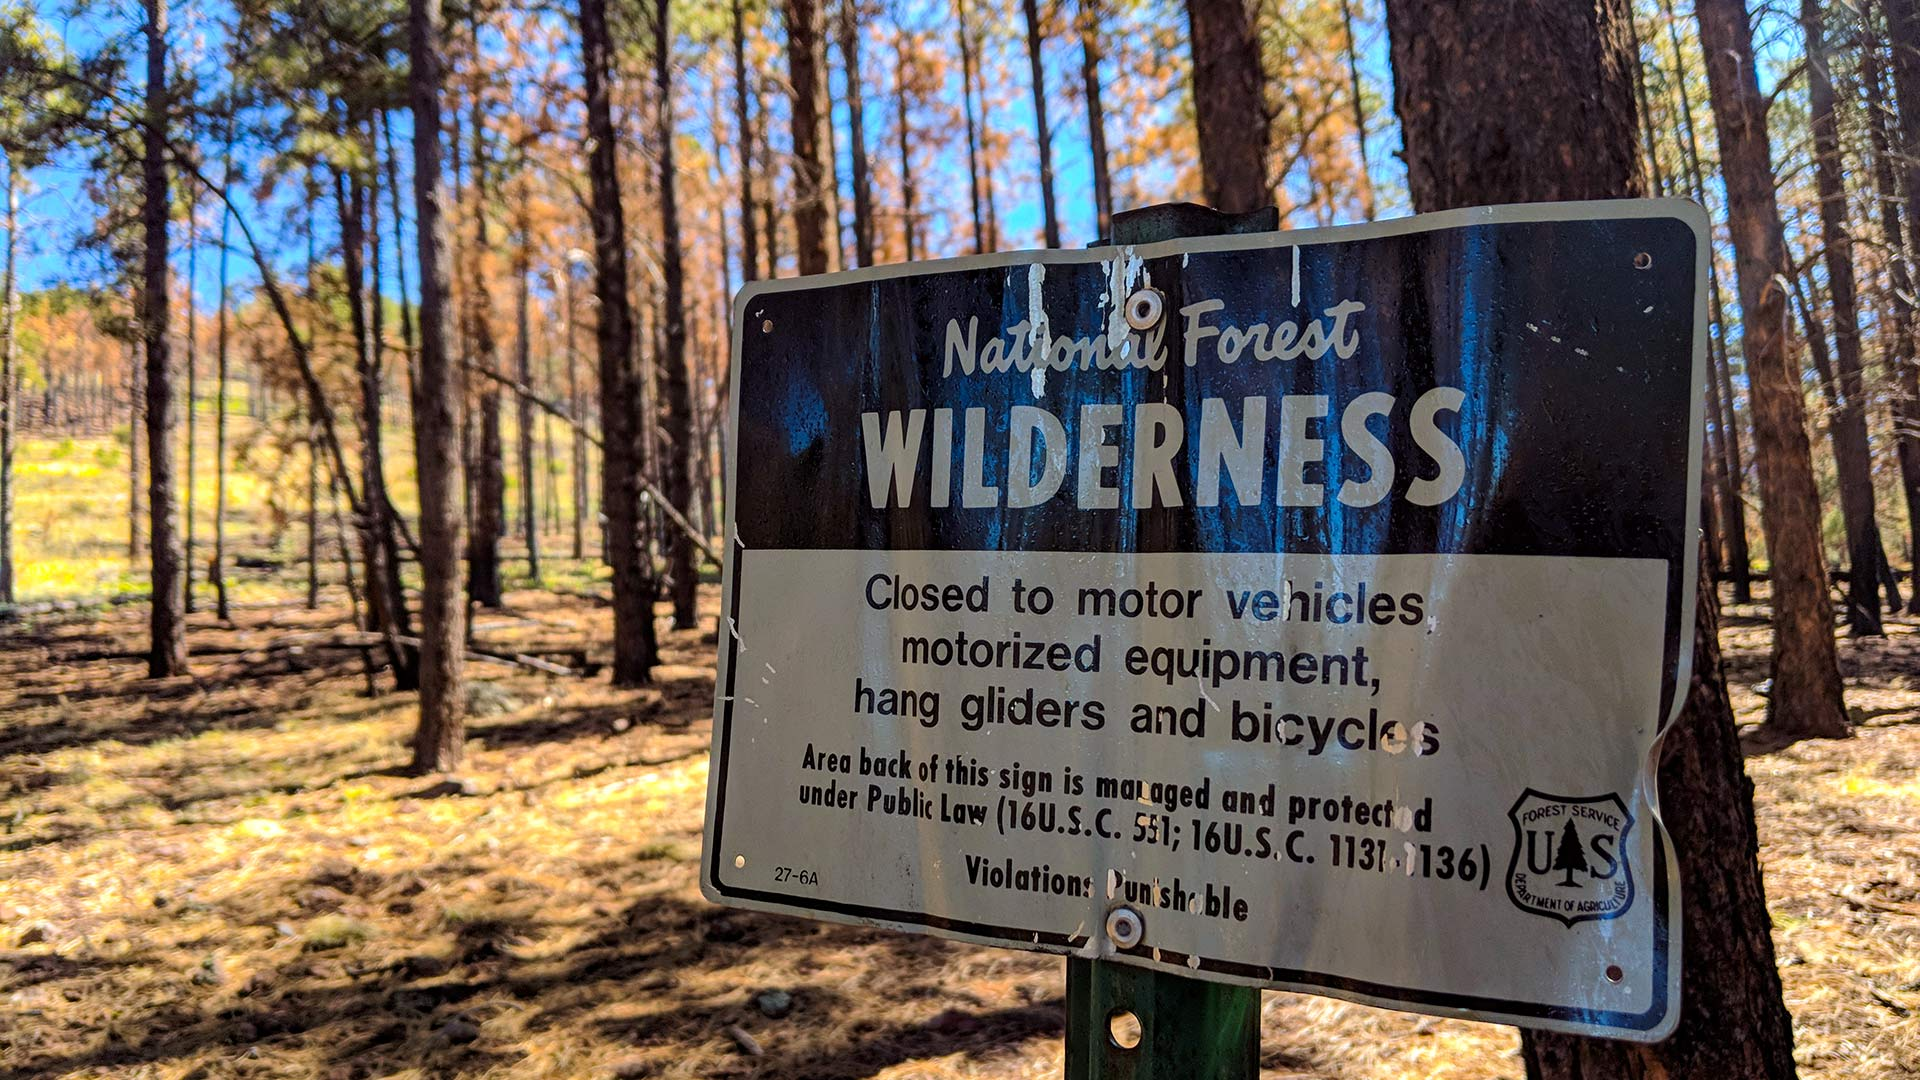 Wilderness national forest sign